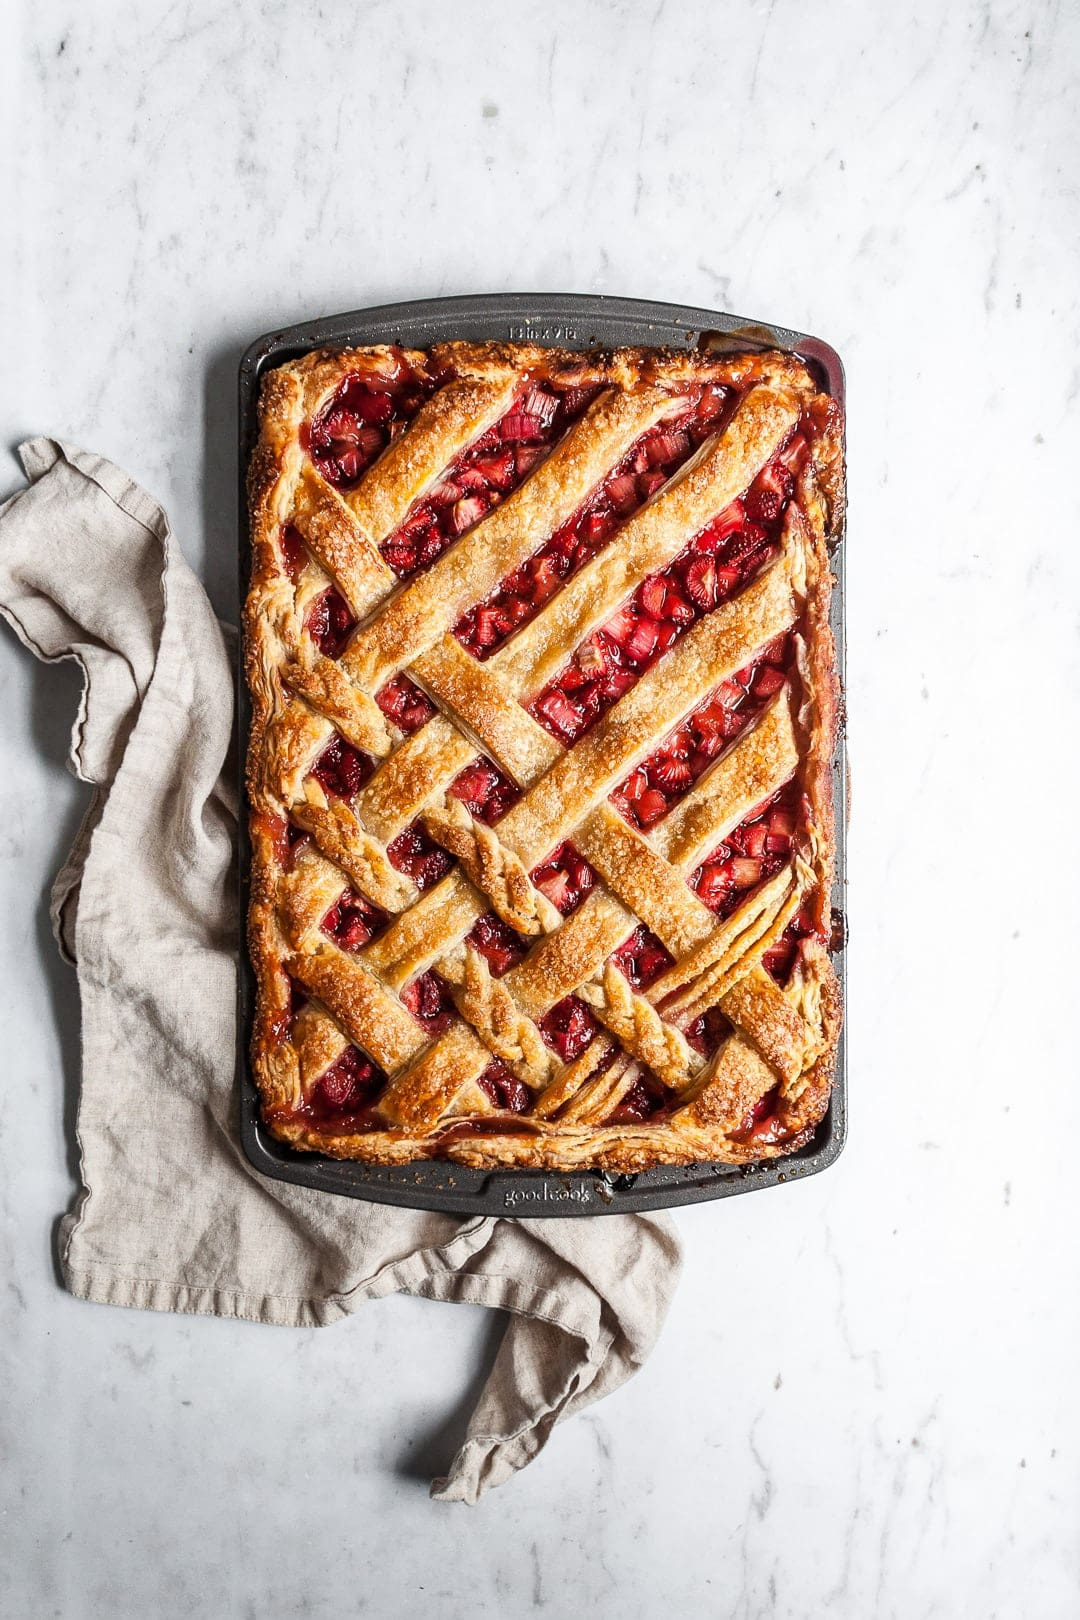 Top view of baked strawberry rhubarb slab pie with natural linen towel underneath pan, resting on a marble background